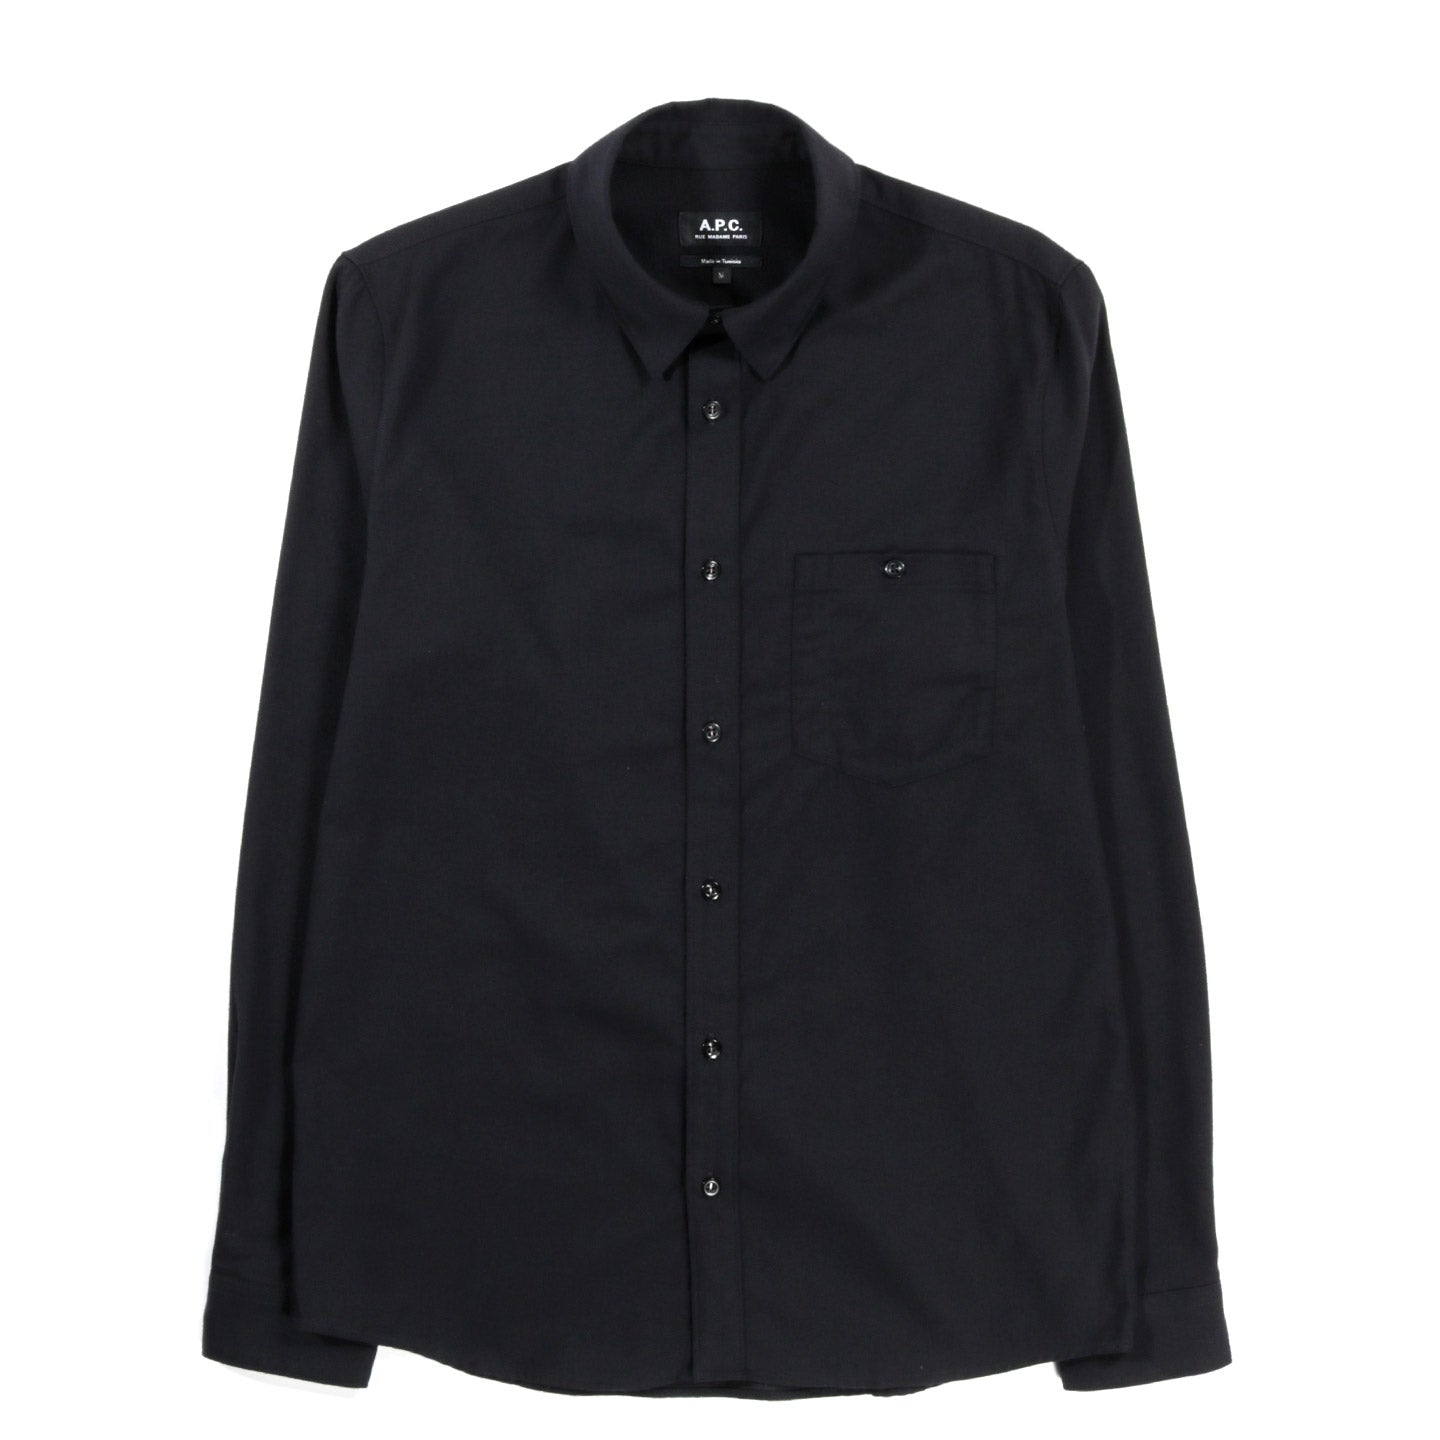 A.P.C. CHICAGO SHIRT BLACK